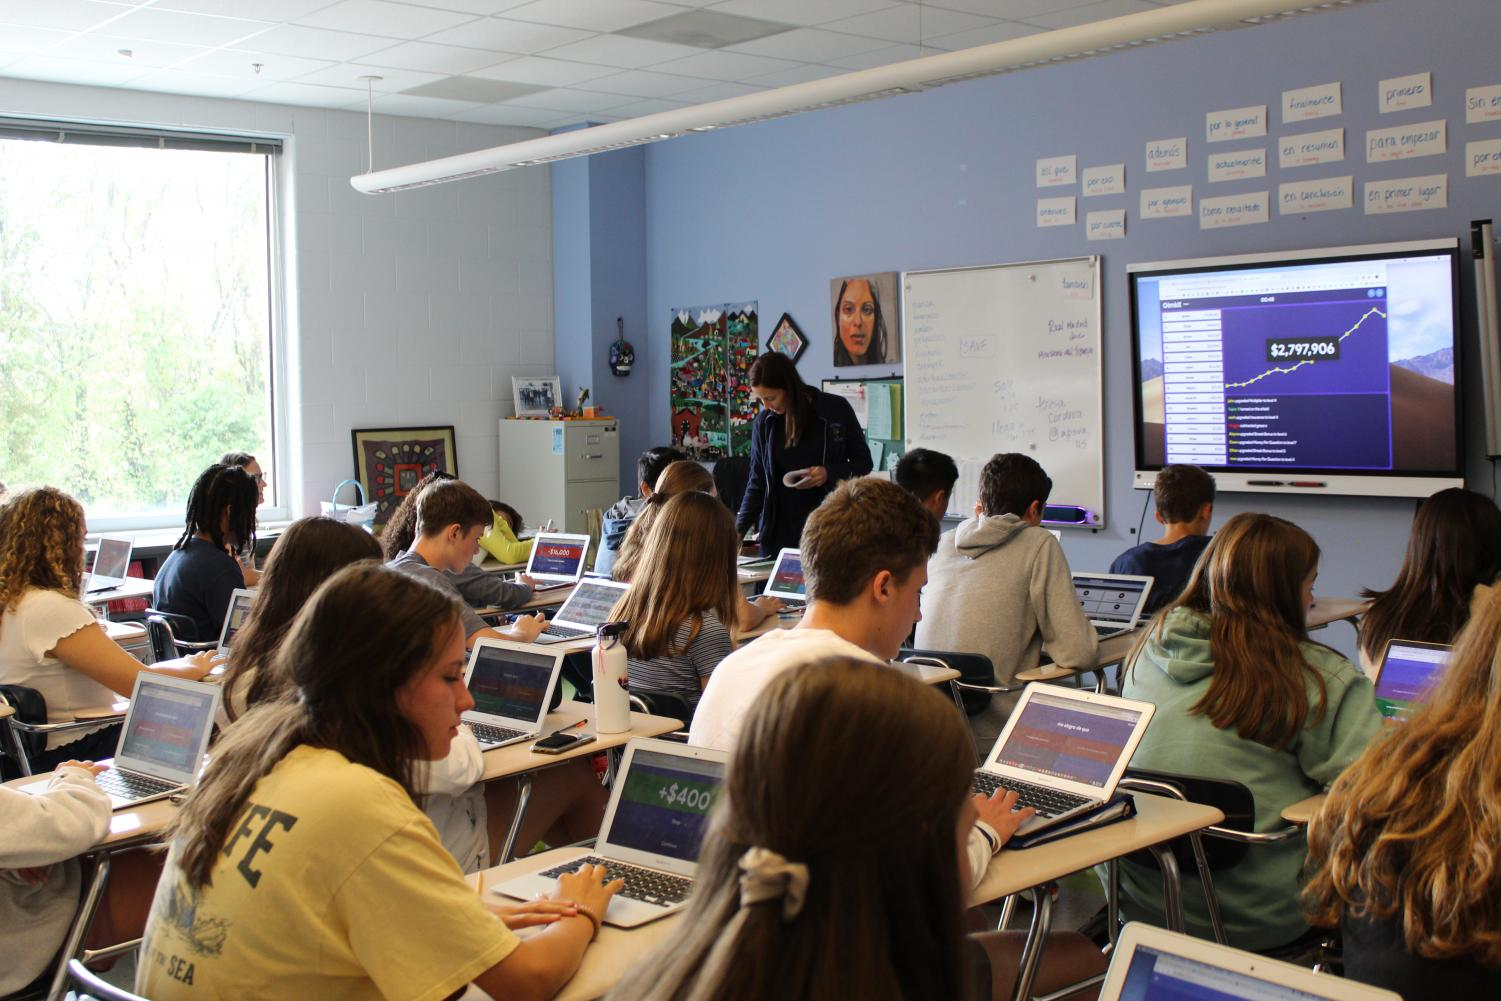 Many classes have up to 35 students.